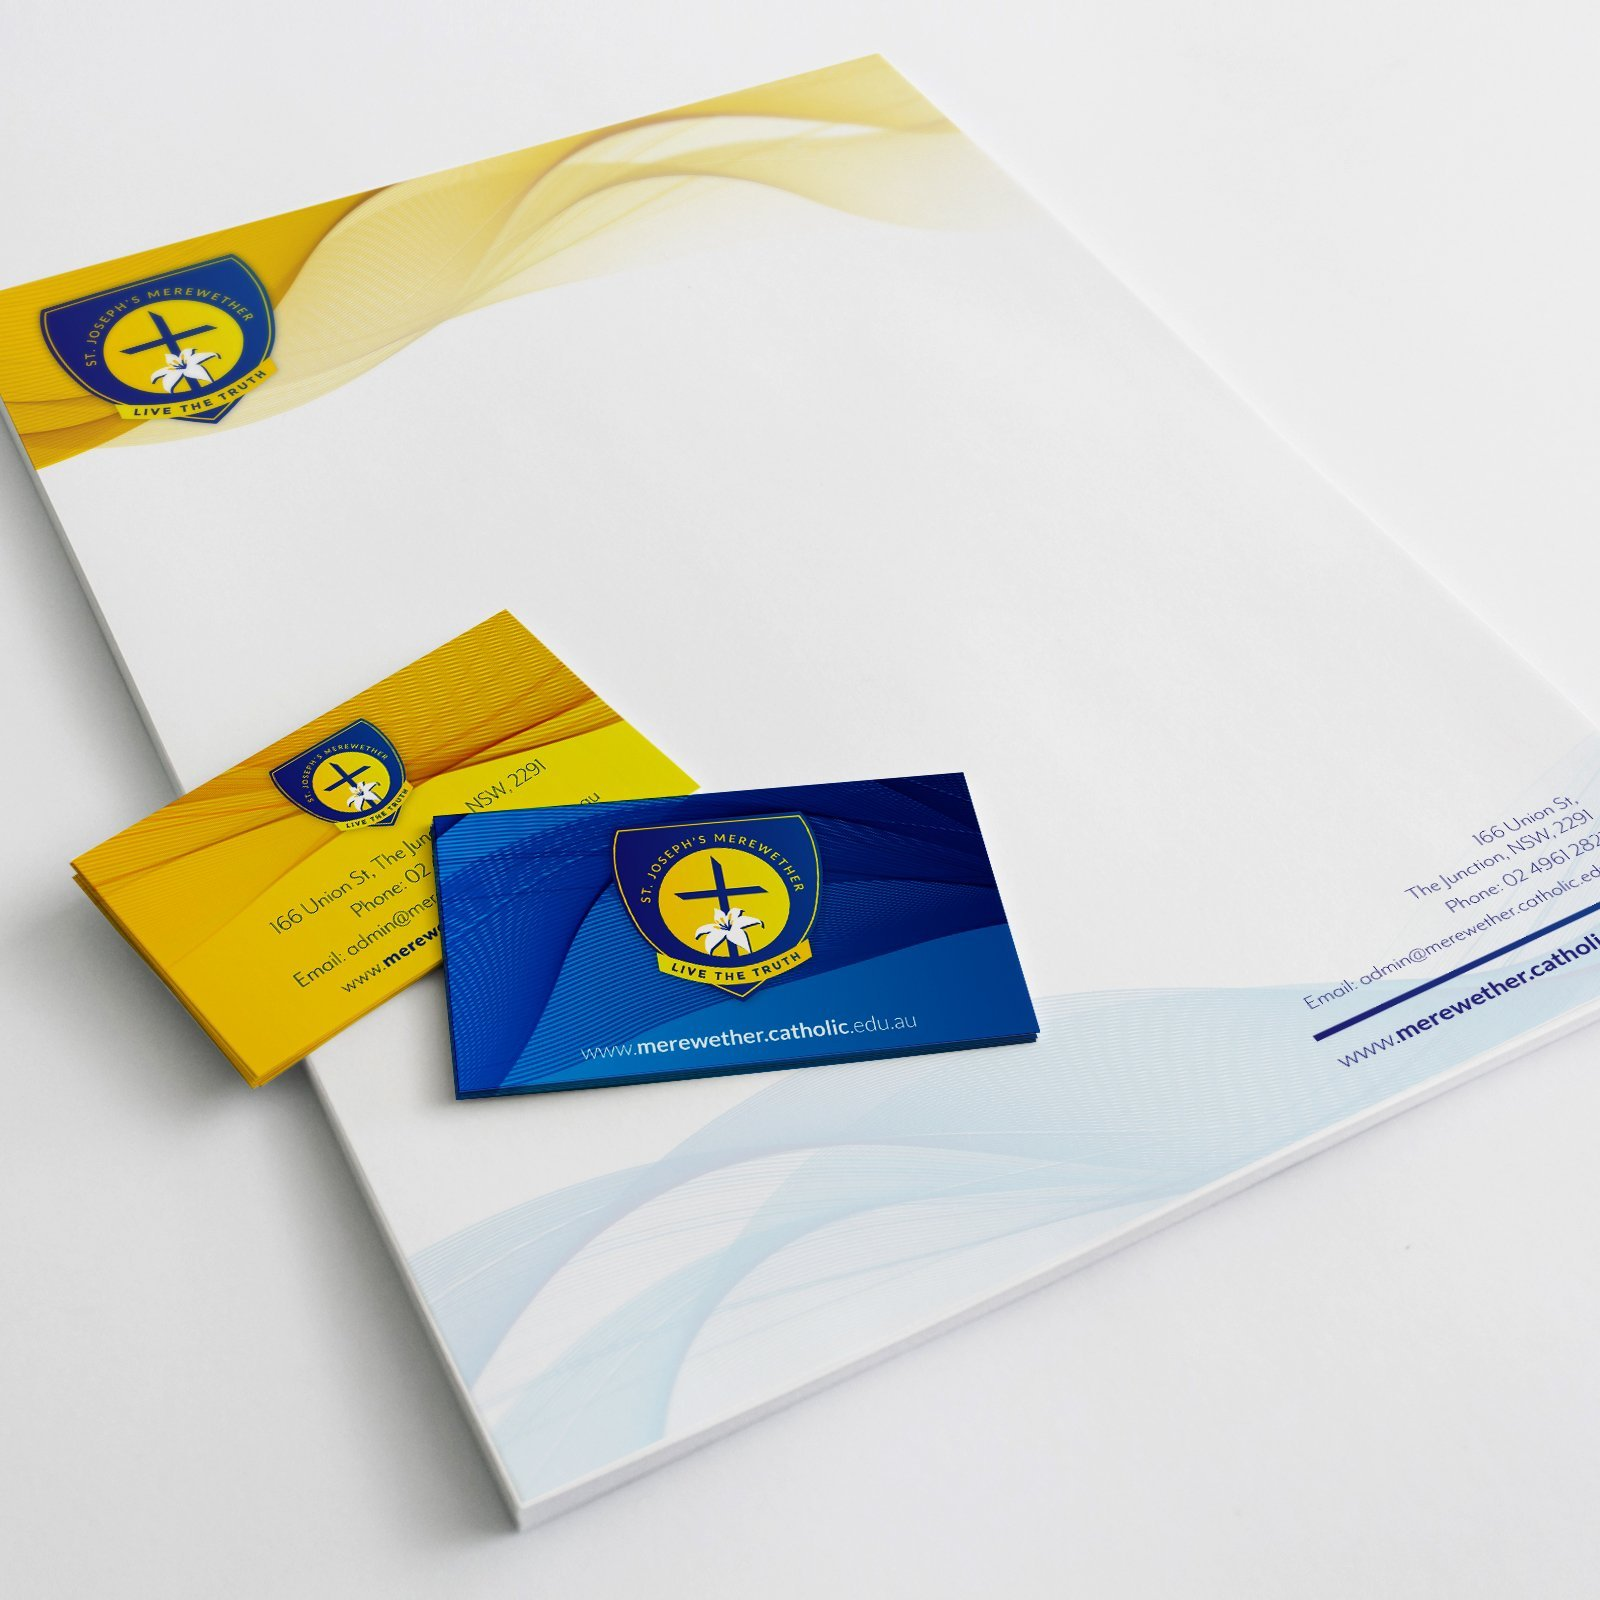 Catholic Schools Office Letterhead and Business Card